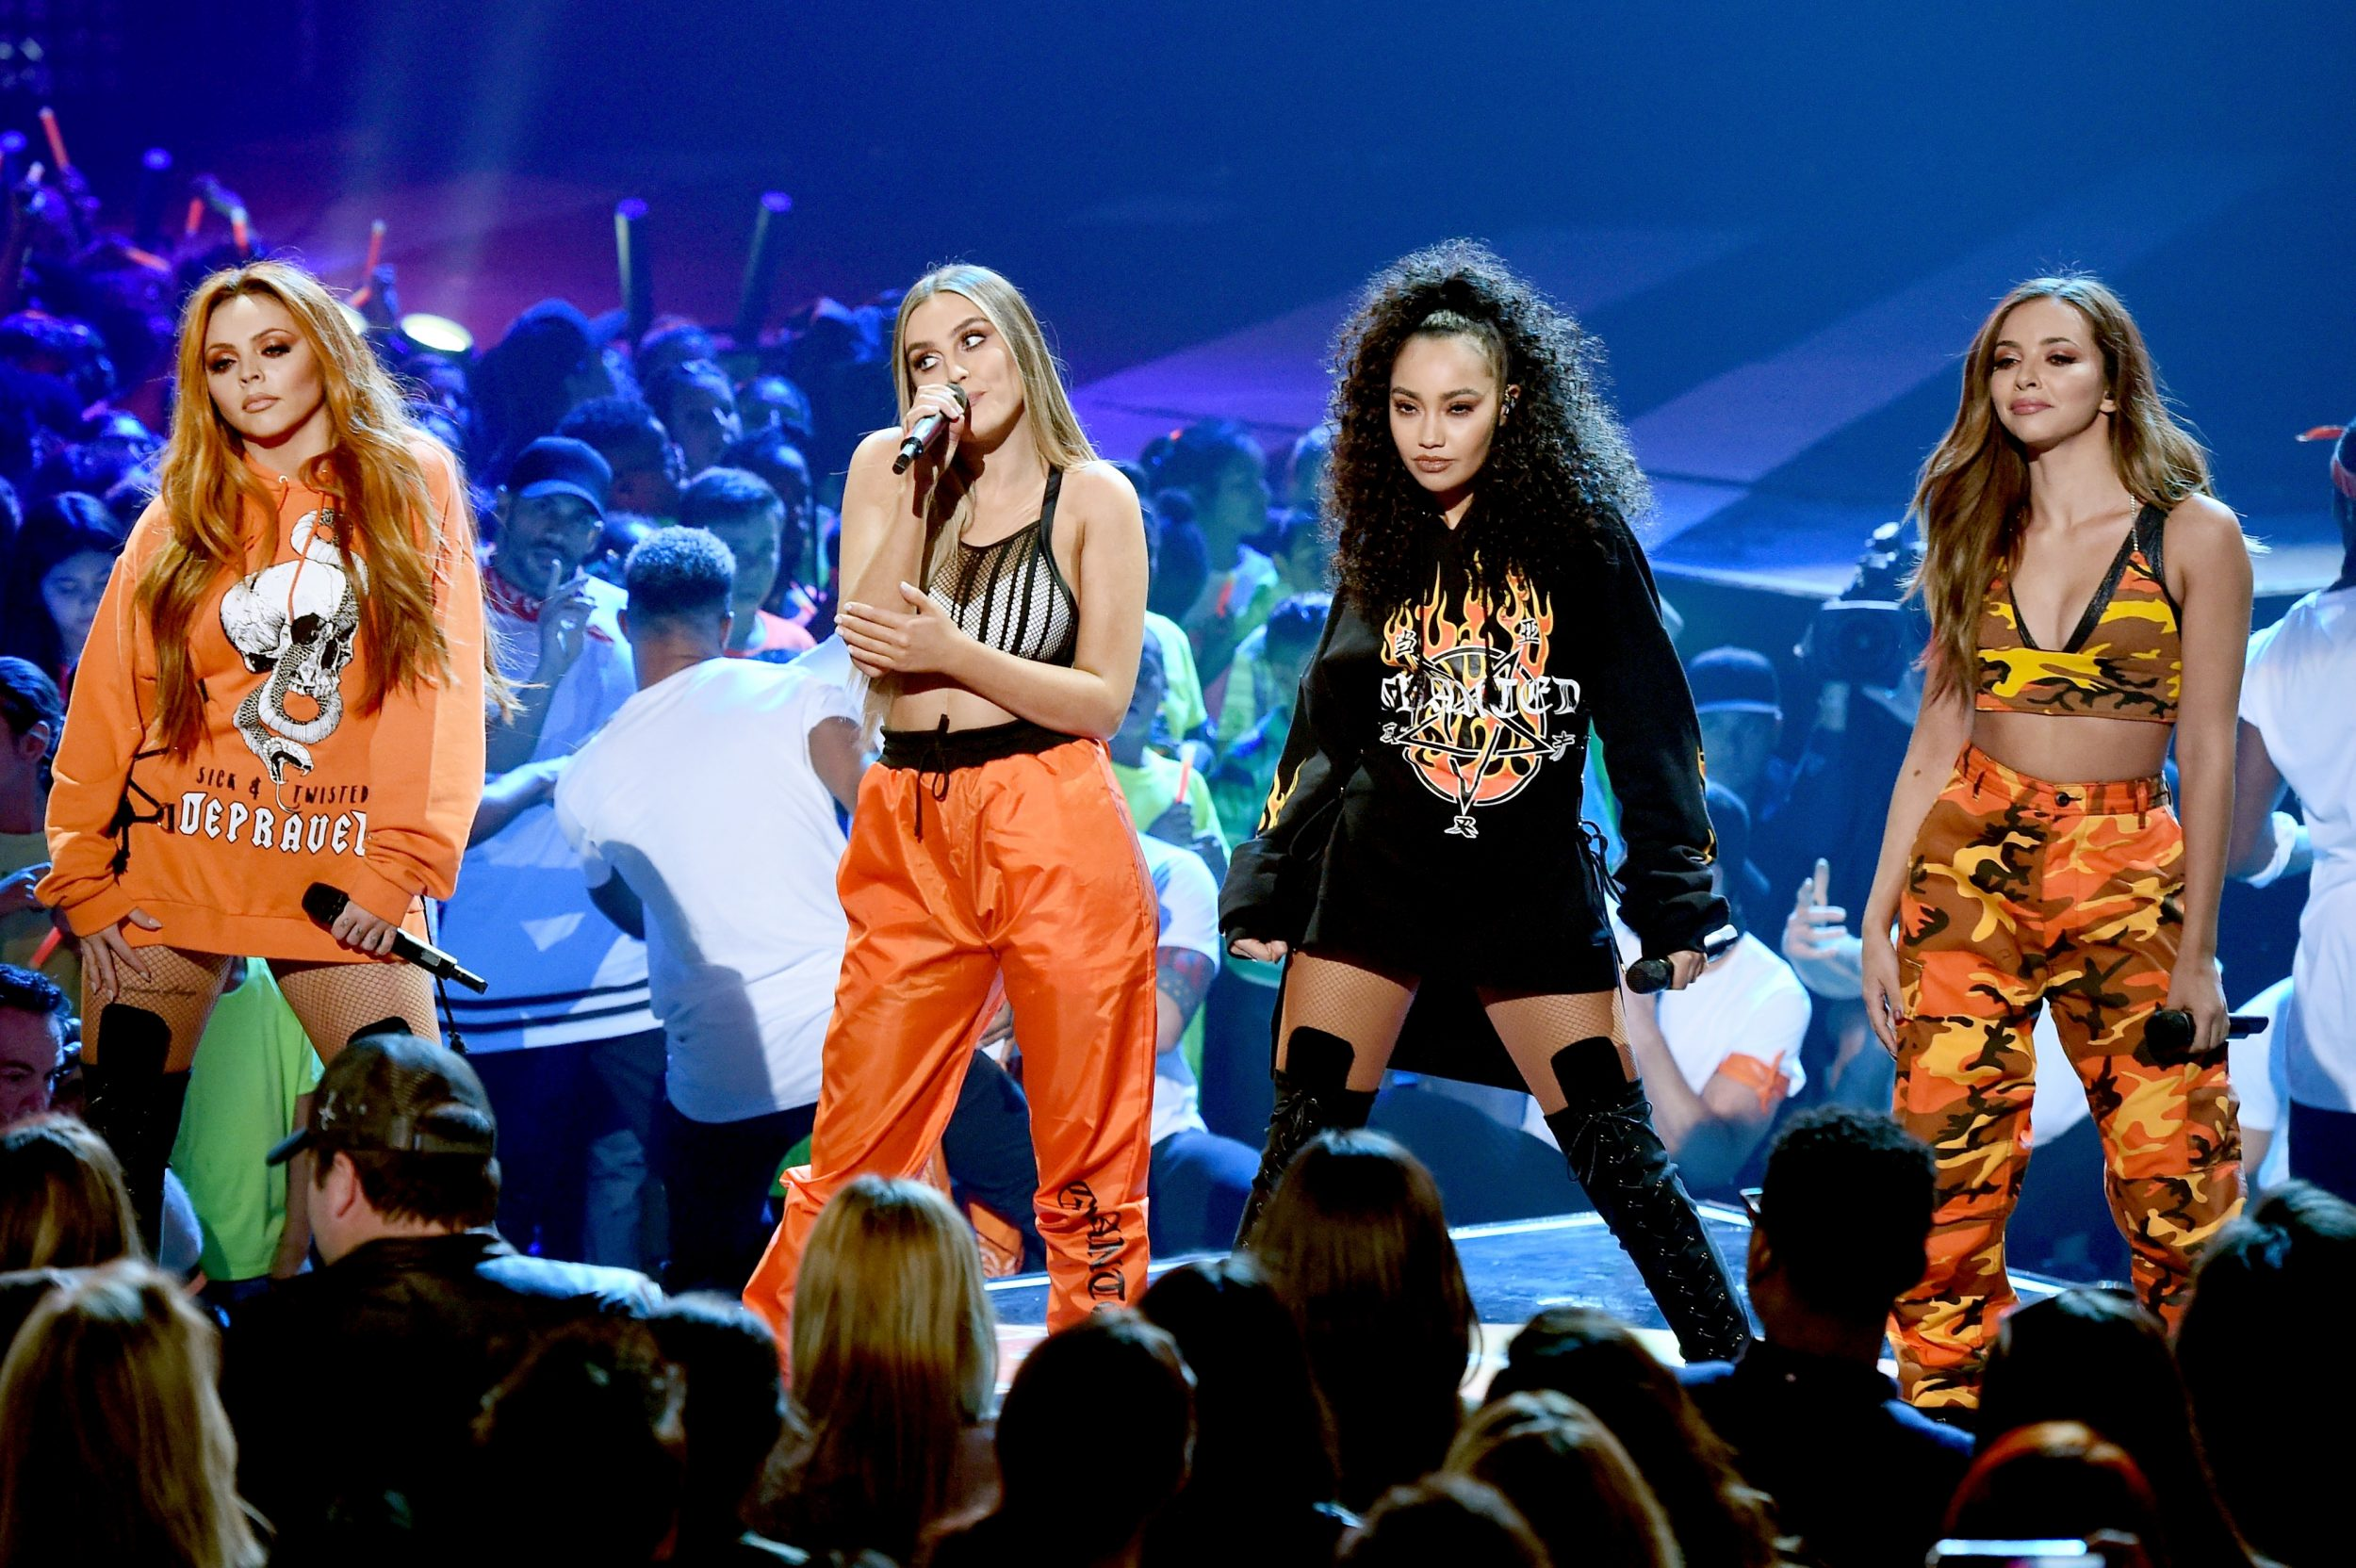 LOS ANGELES, CA - MARCH 11:  Musical group Little Mix performs onstage at Nickelodeon's 2017 Kids' Choice Awards at USC Galen Center on March 11, 2017 in Los Angeles, California.  (Photo by Kevin Winter/Getty Images - Issued to Media by Nickelodeon)